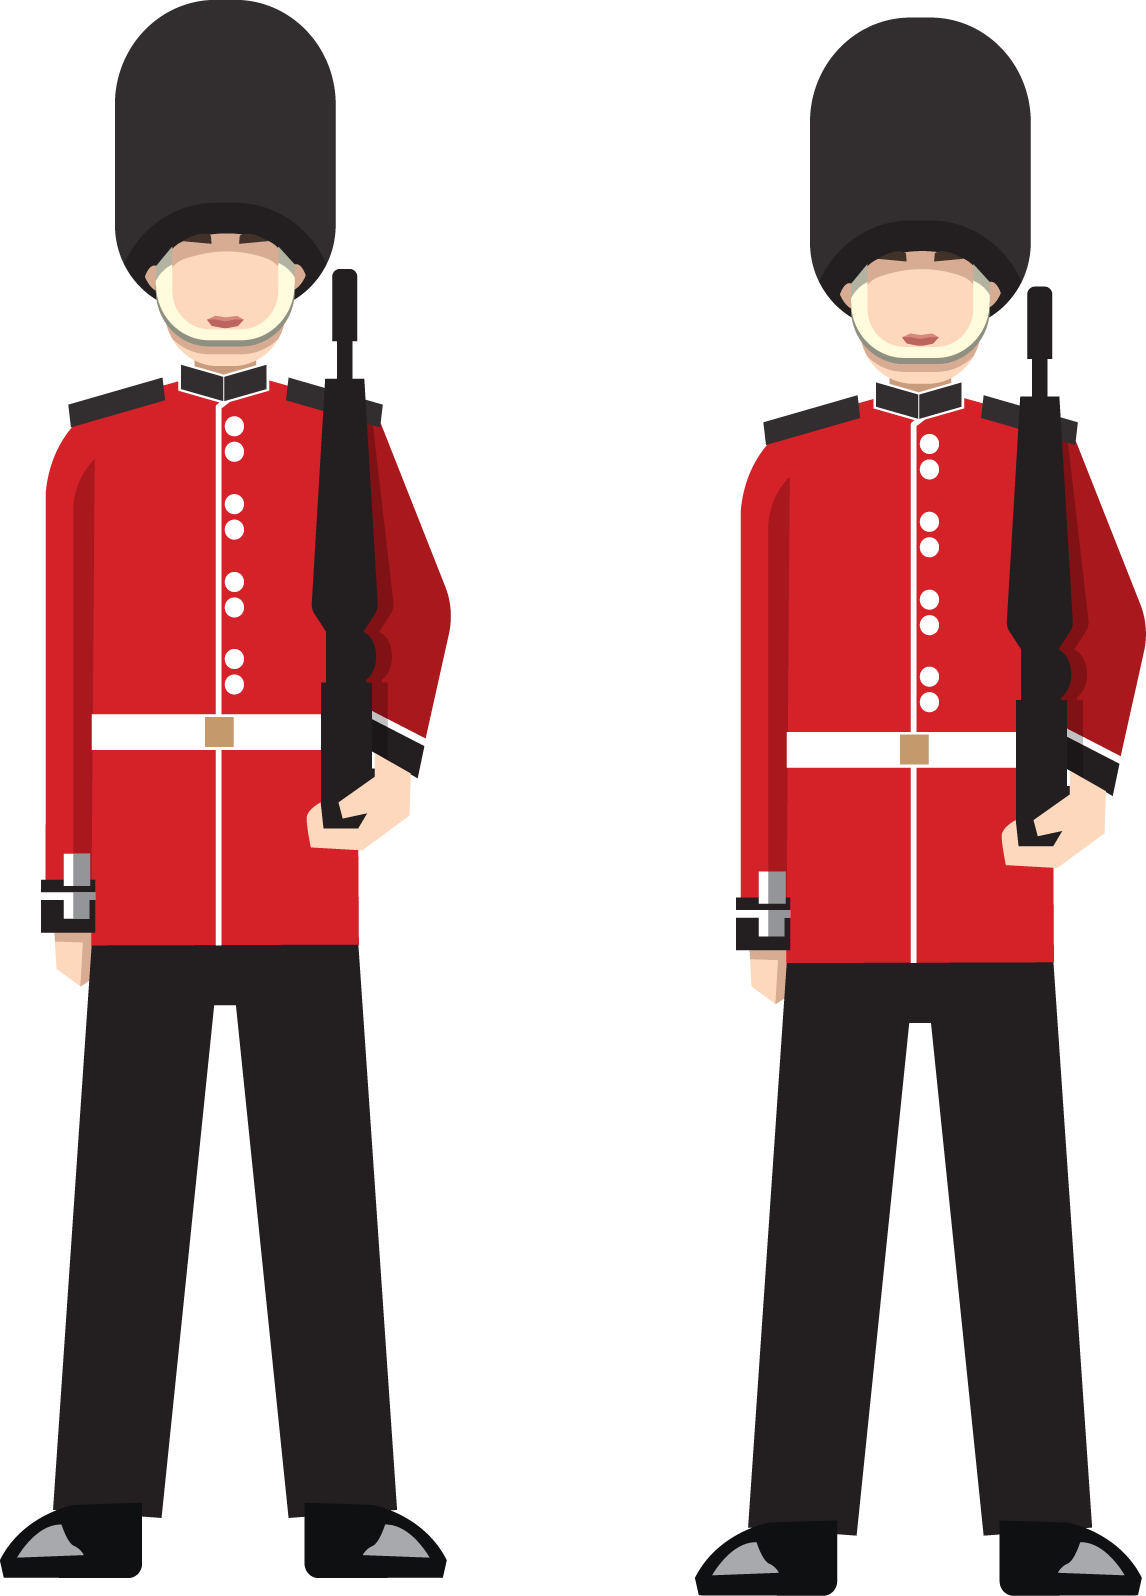 London guard clipart image free Icon British Soldiers Transprent Png Free Download - London Soldiers ... image free